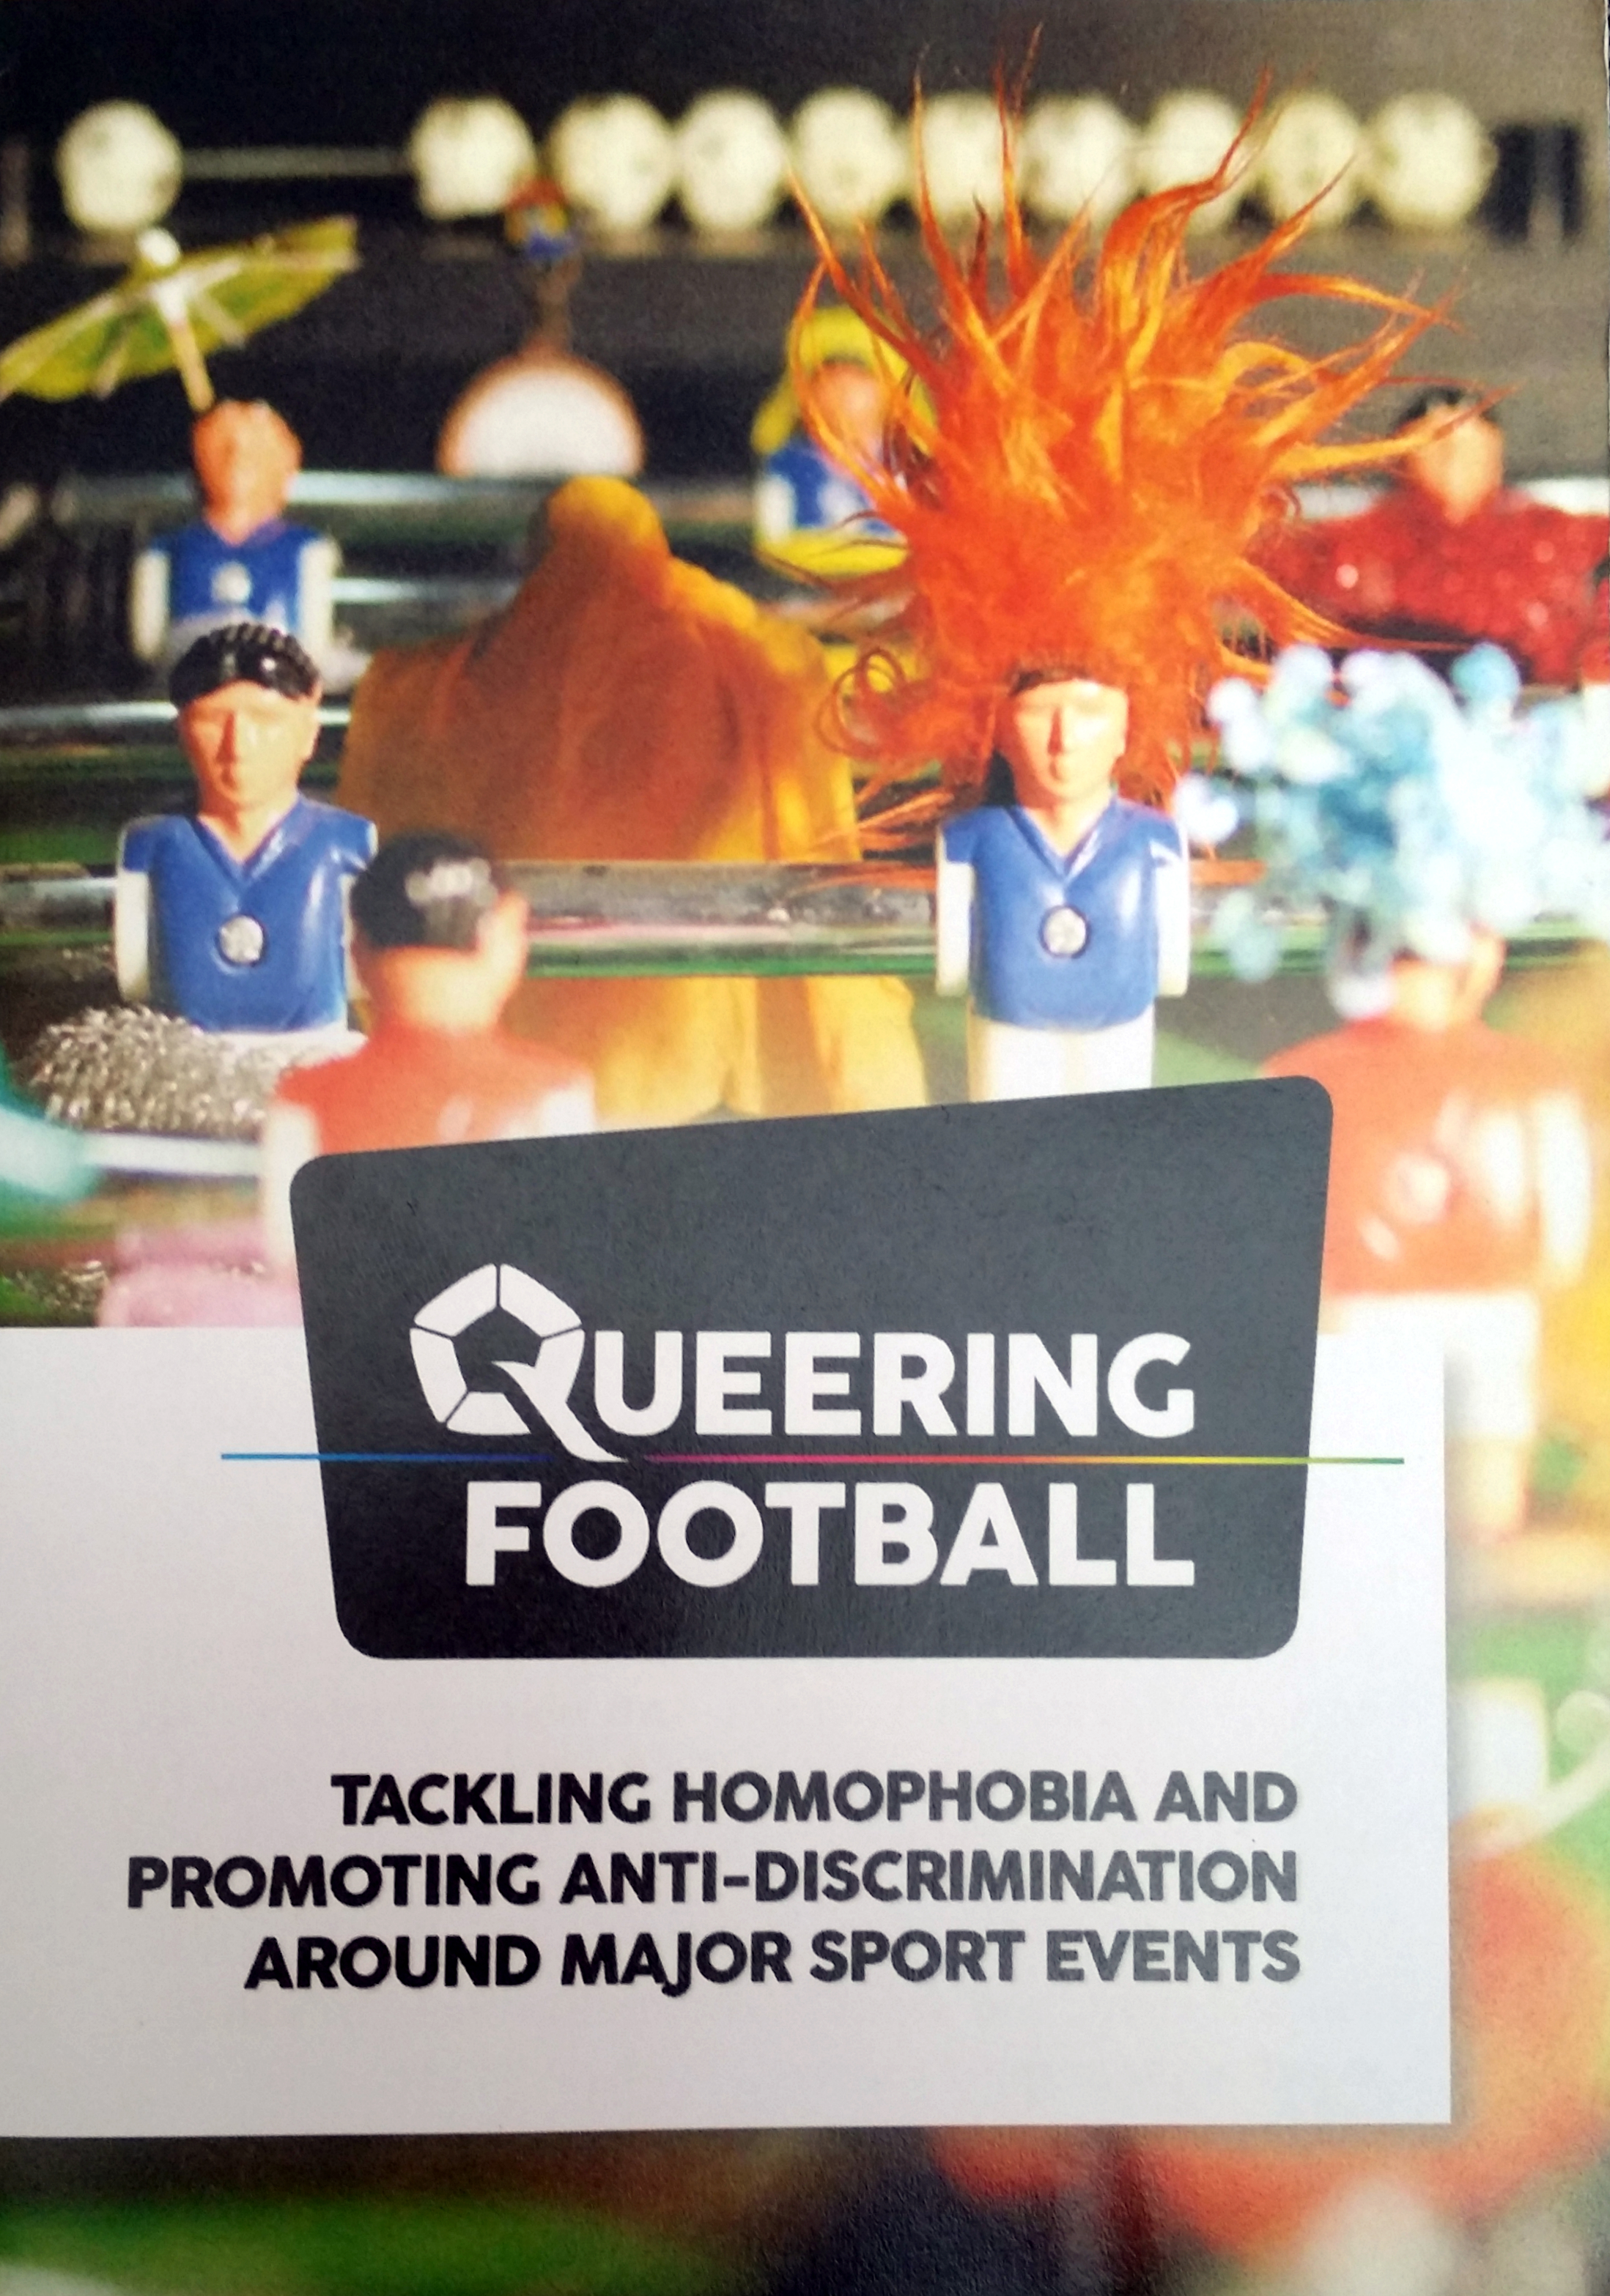 20160605-Queering-Football-I